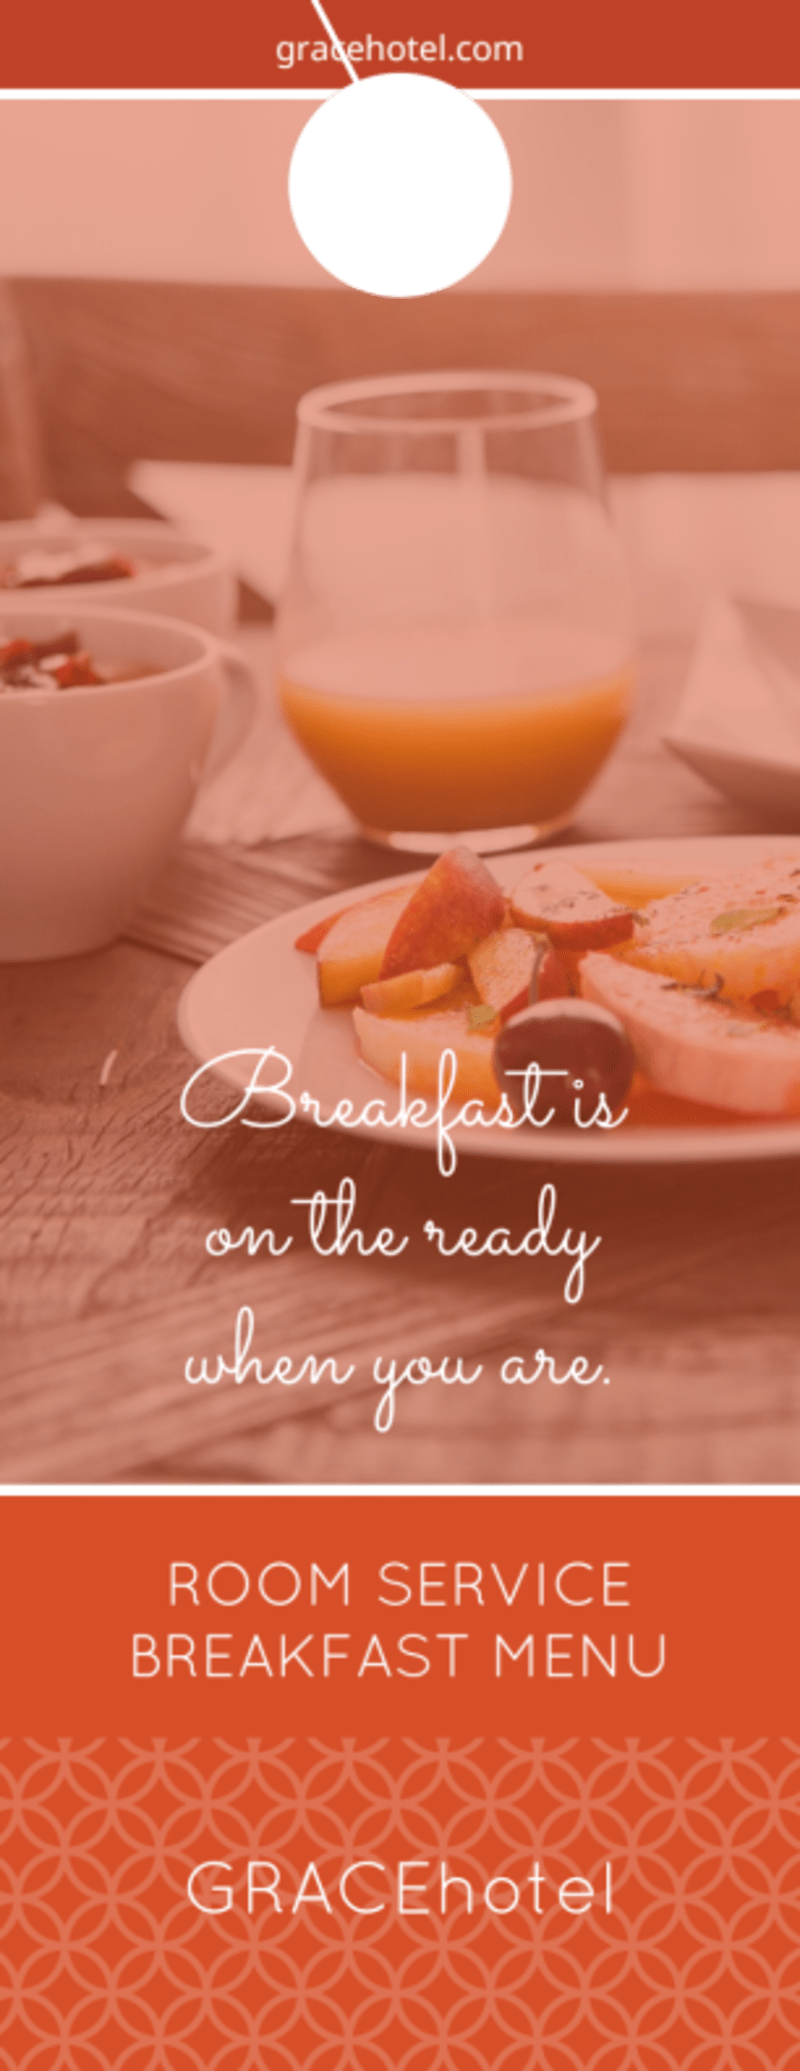 Bright Hotel Breakfast Menu Door Hanger Template Preview 2